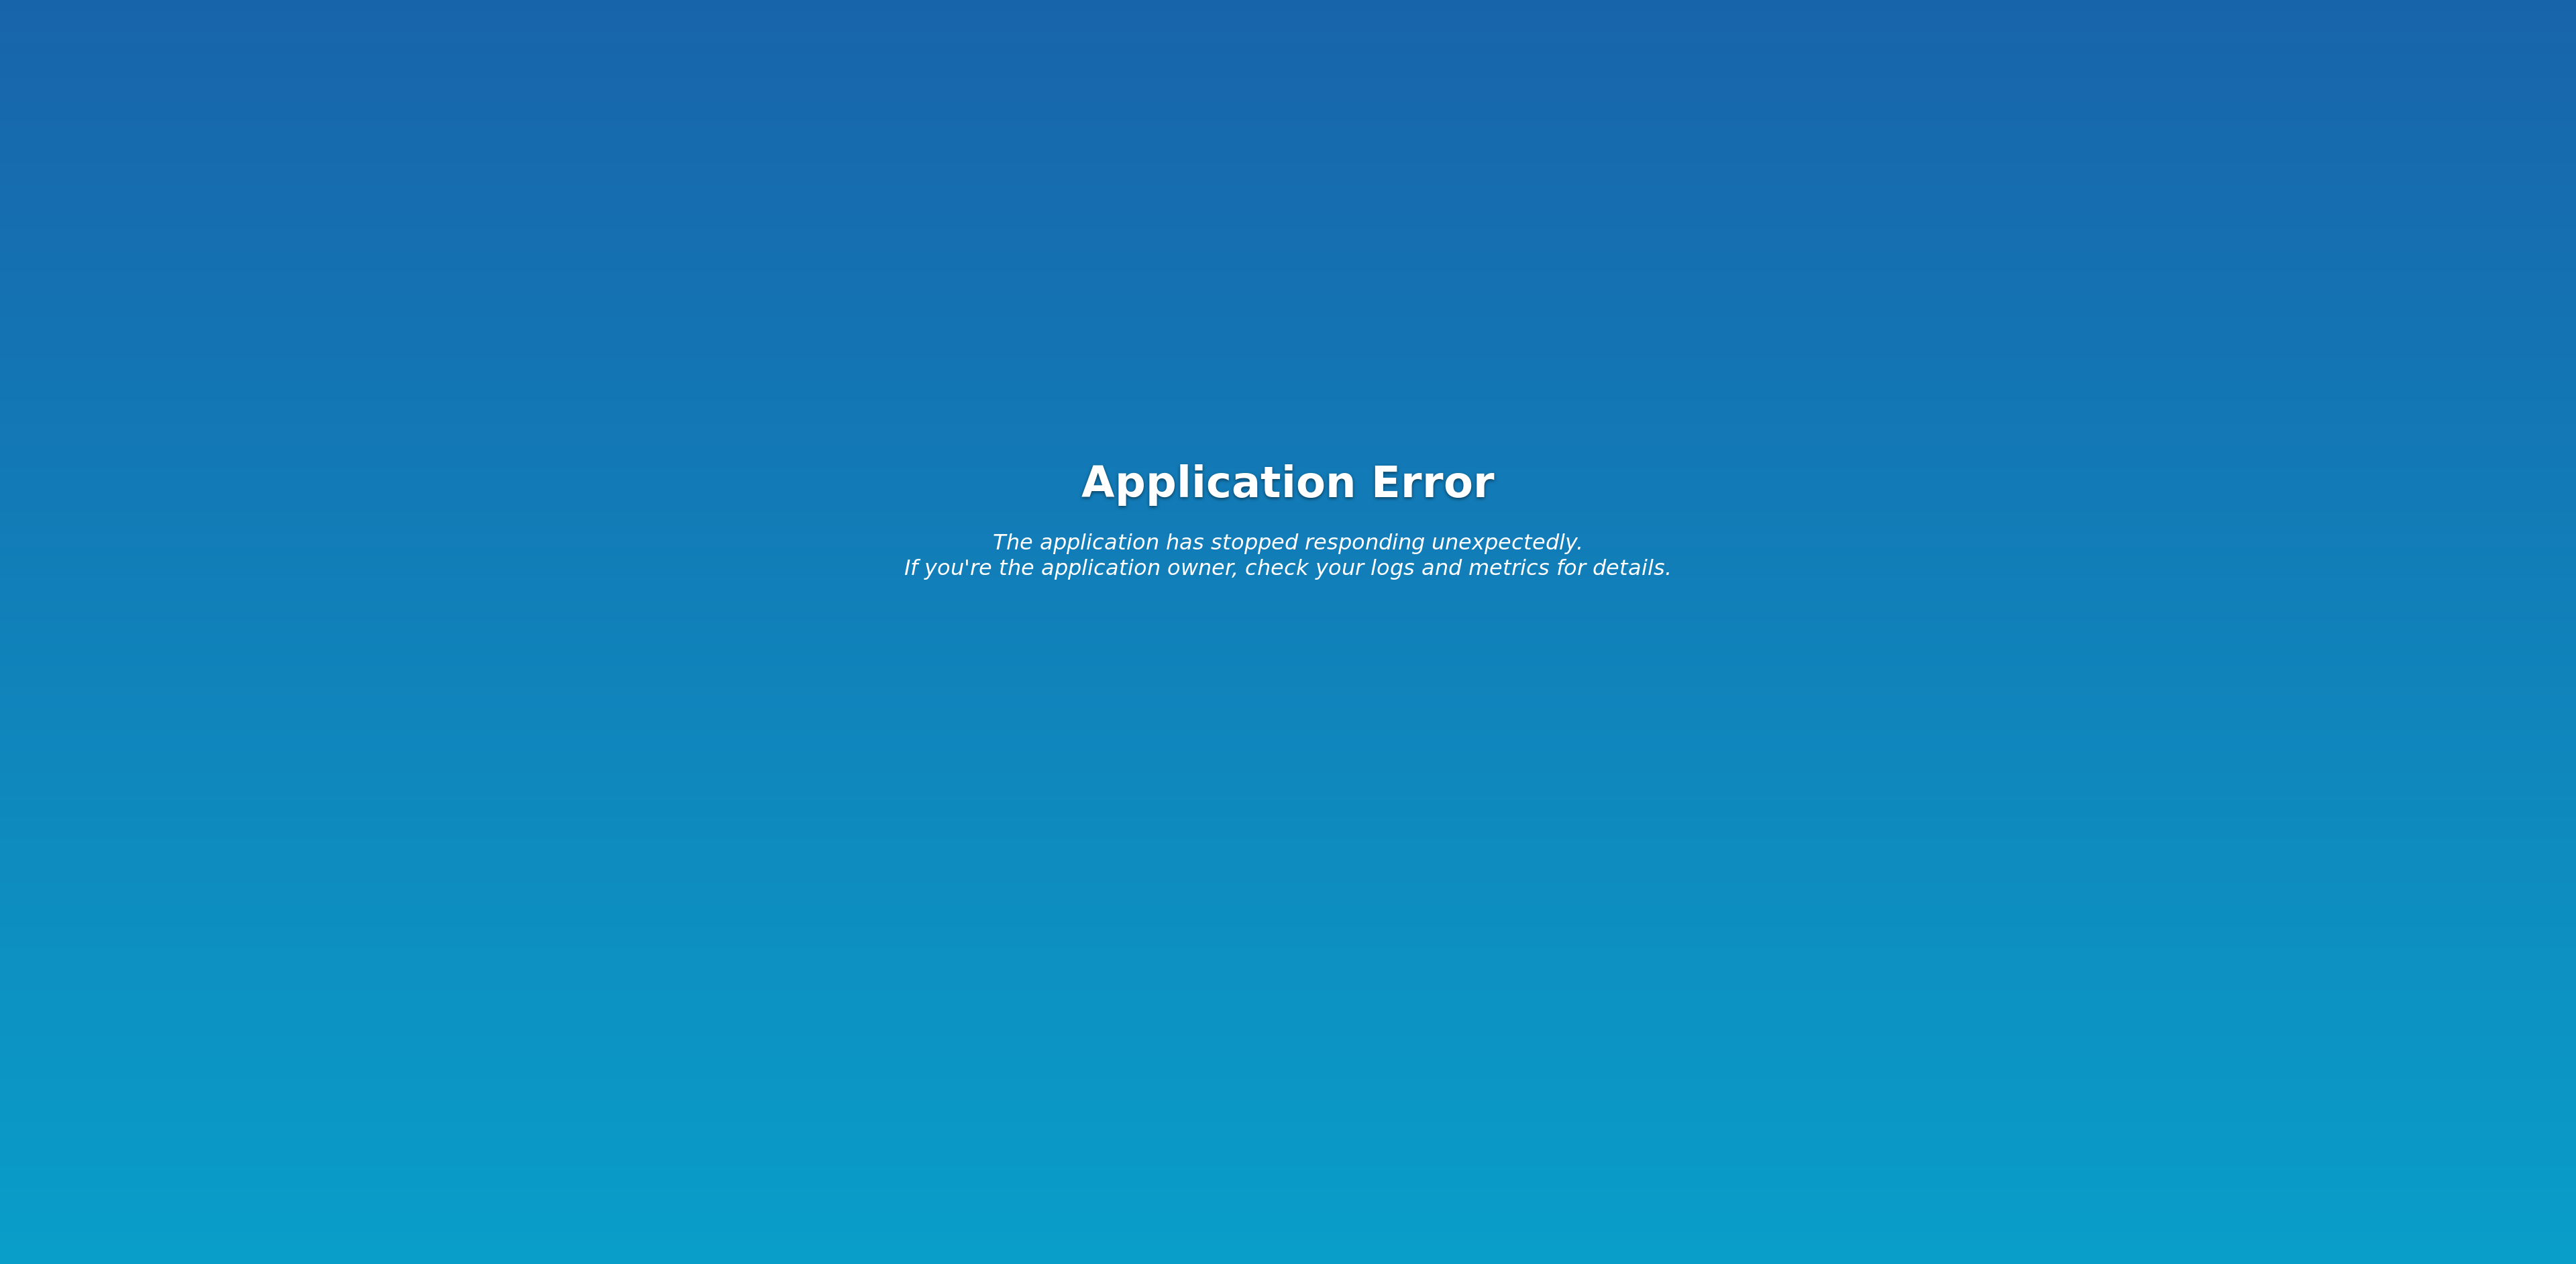 Scalingo default application error page